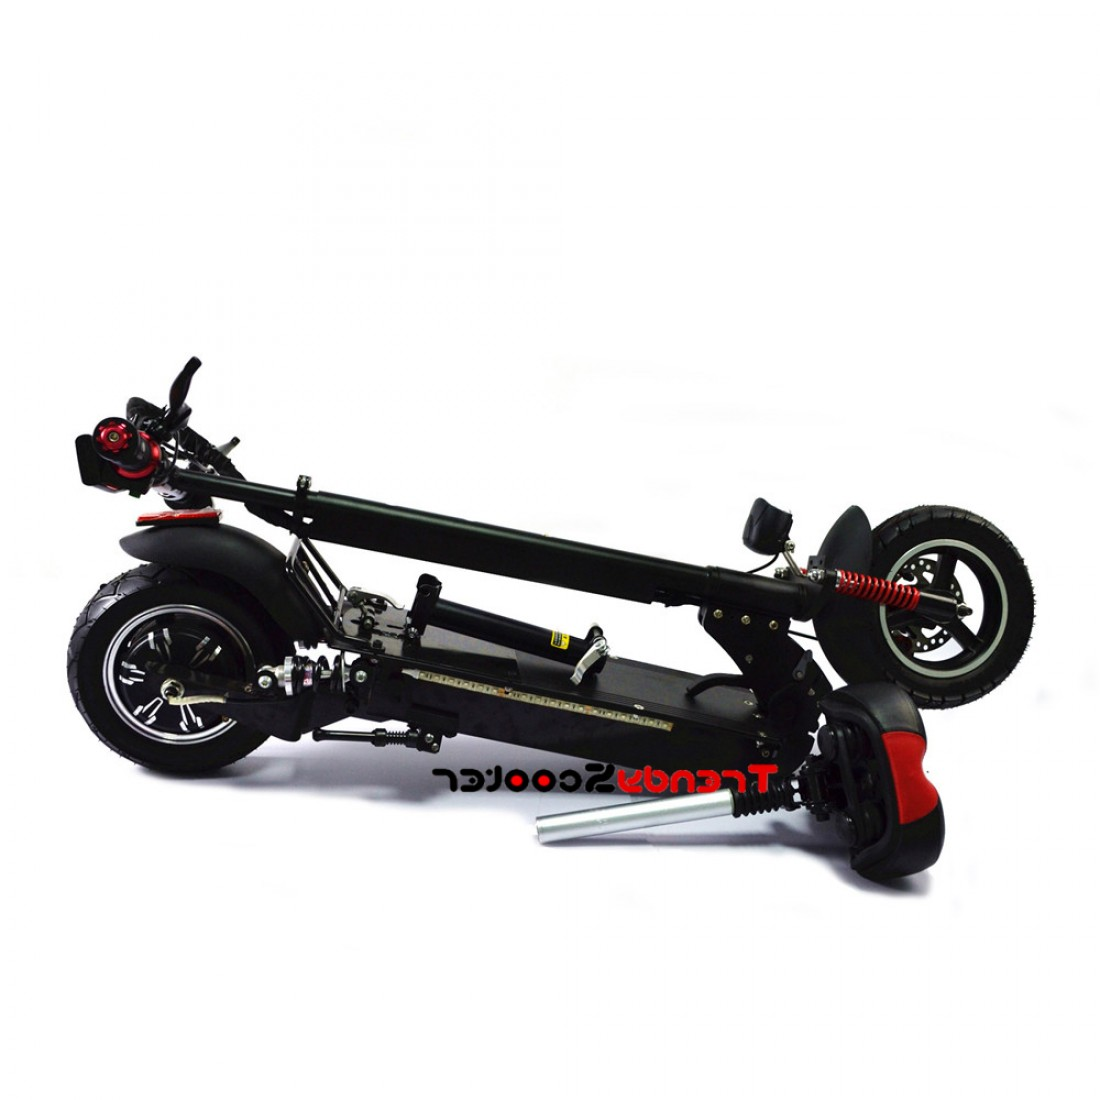 rhino-smart-electric-scooter-folding-long-range-series-1100×1100